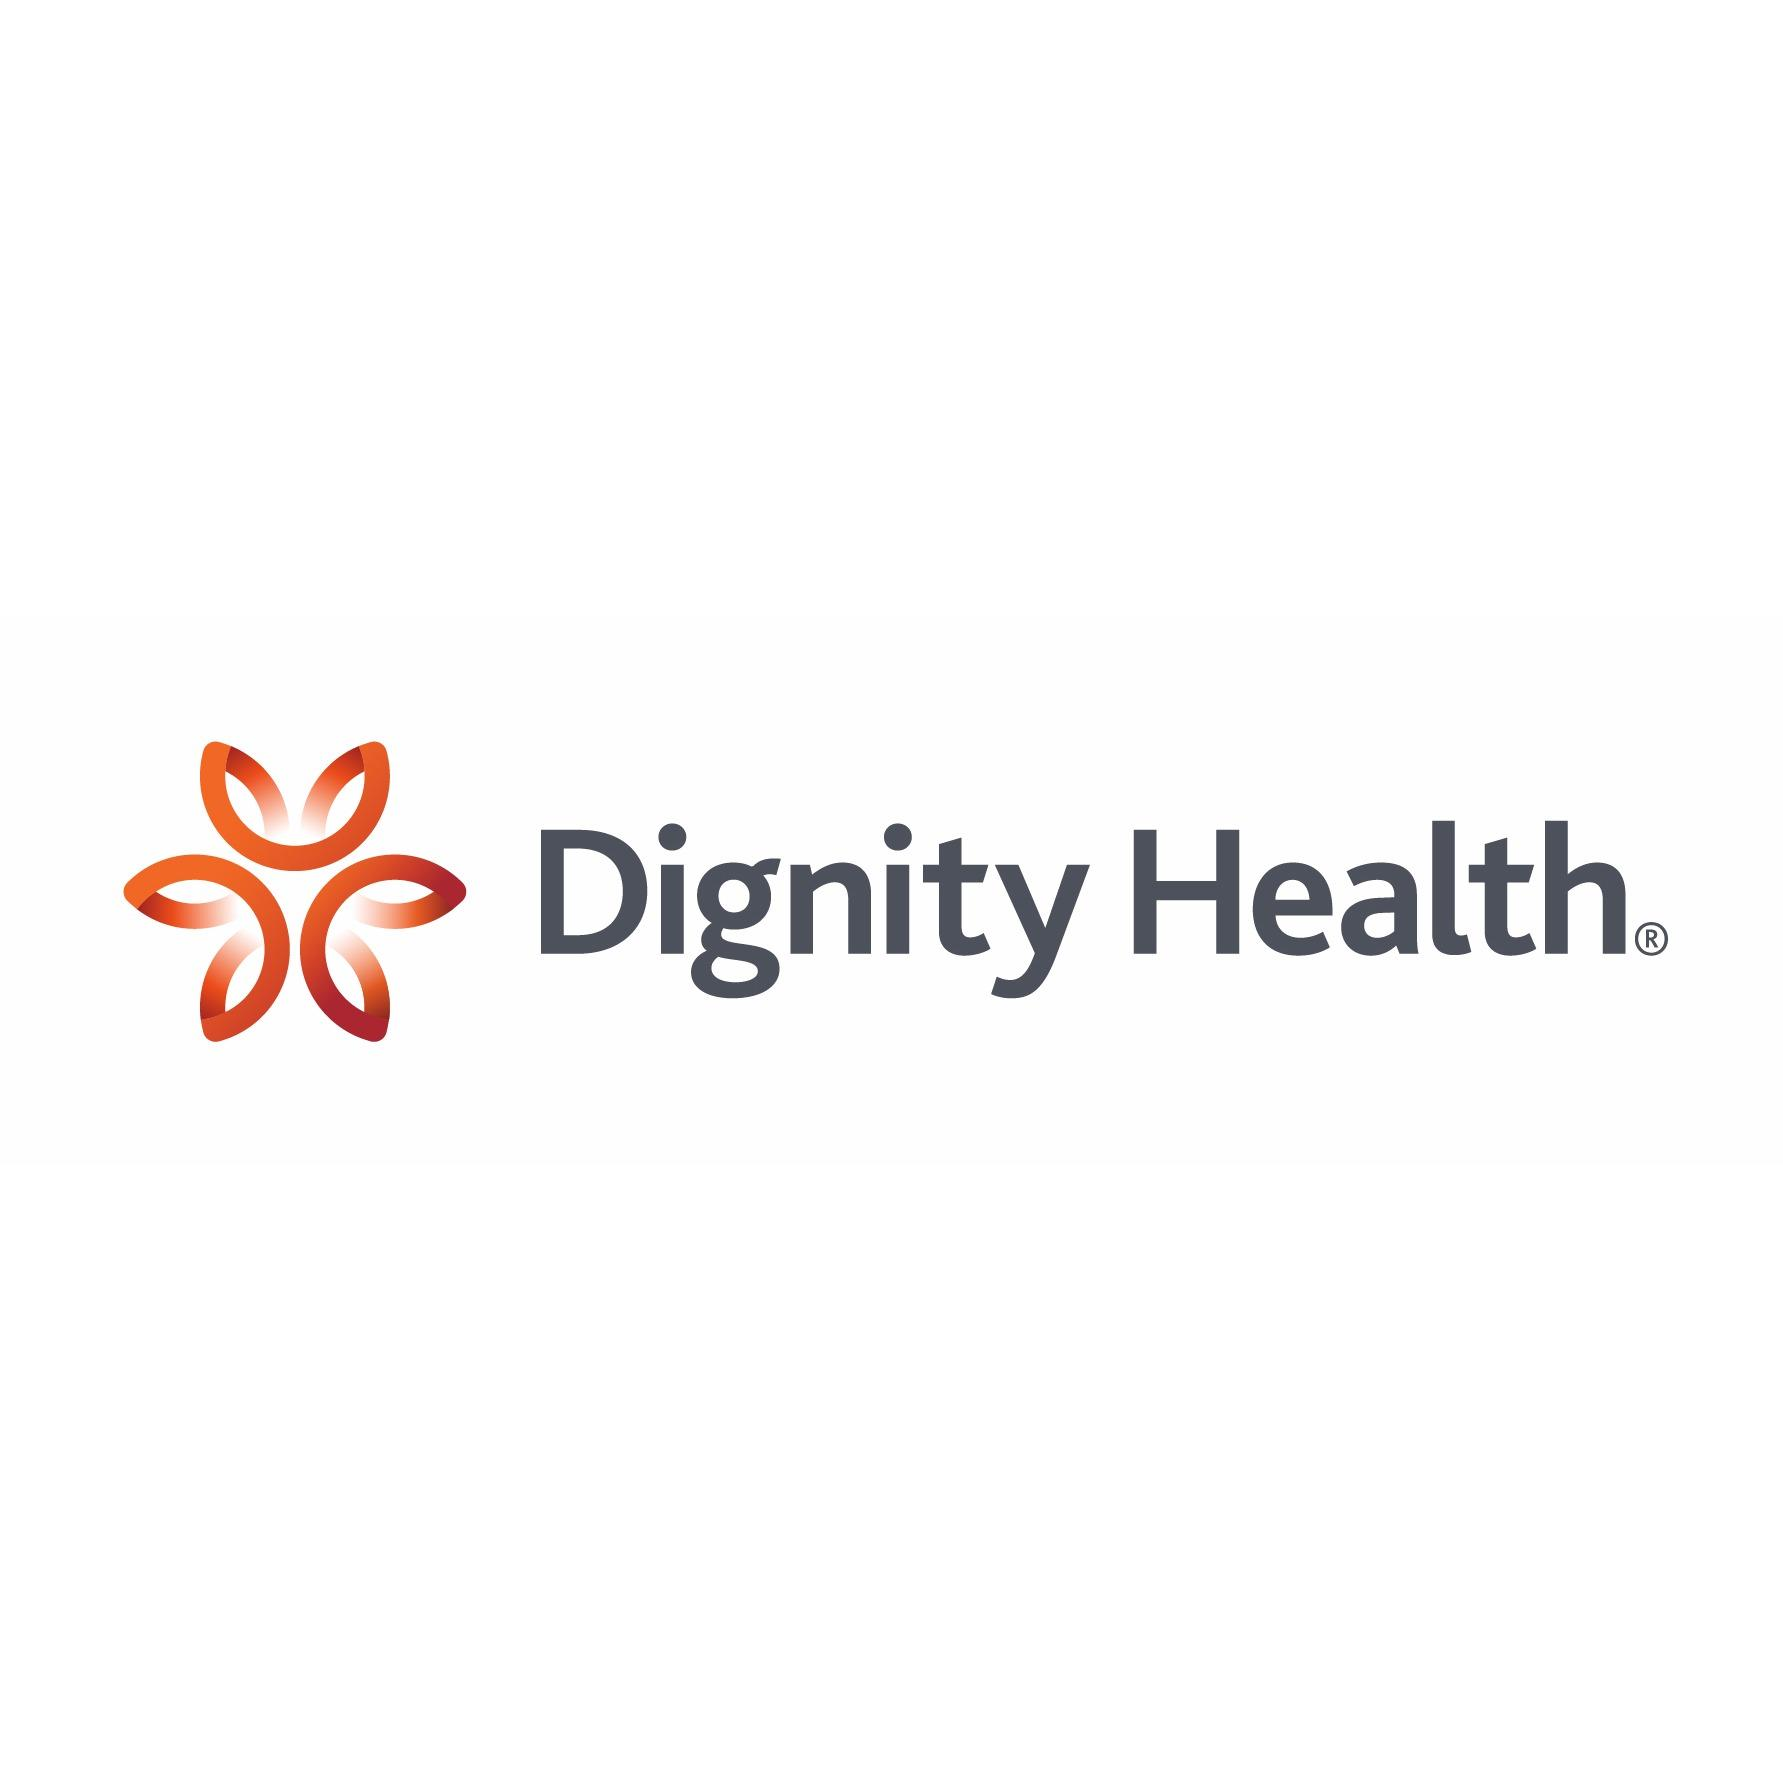 Dignity Health Medical Group - Dominican - Felton, CA 95018 - (831)335-9111 | ShowMeLocal.com